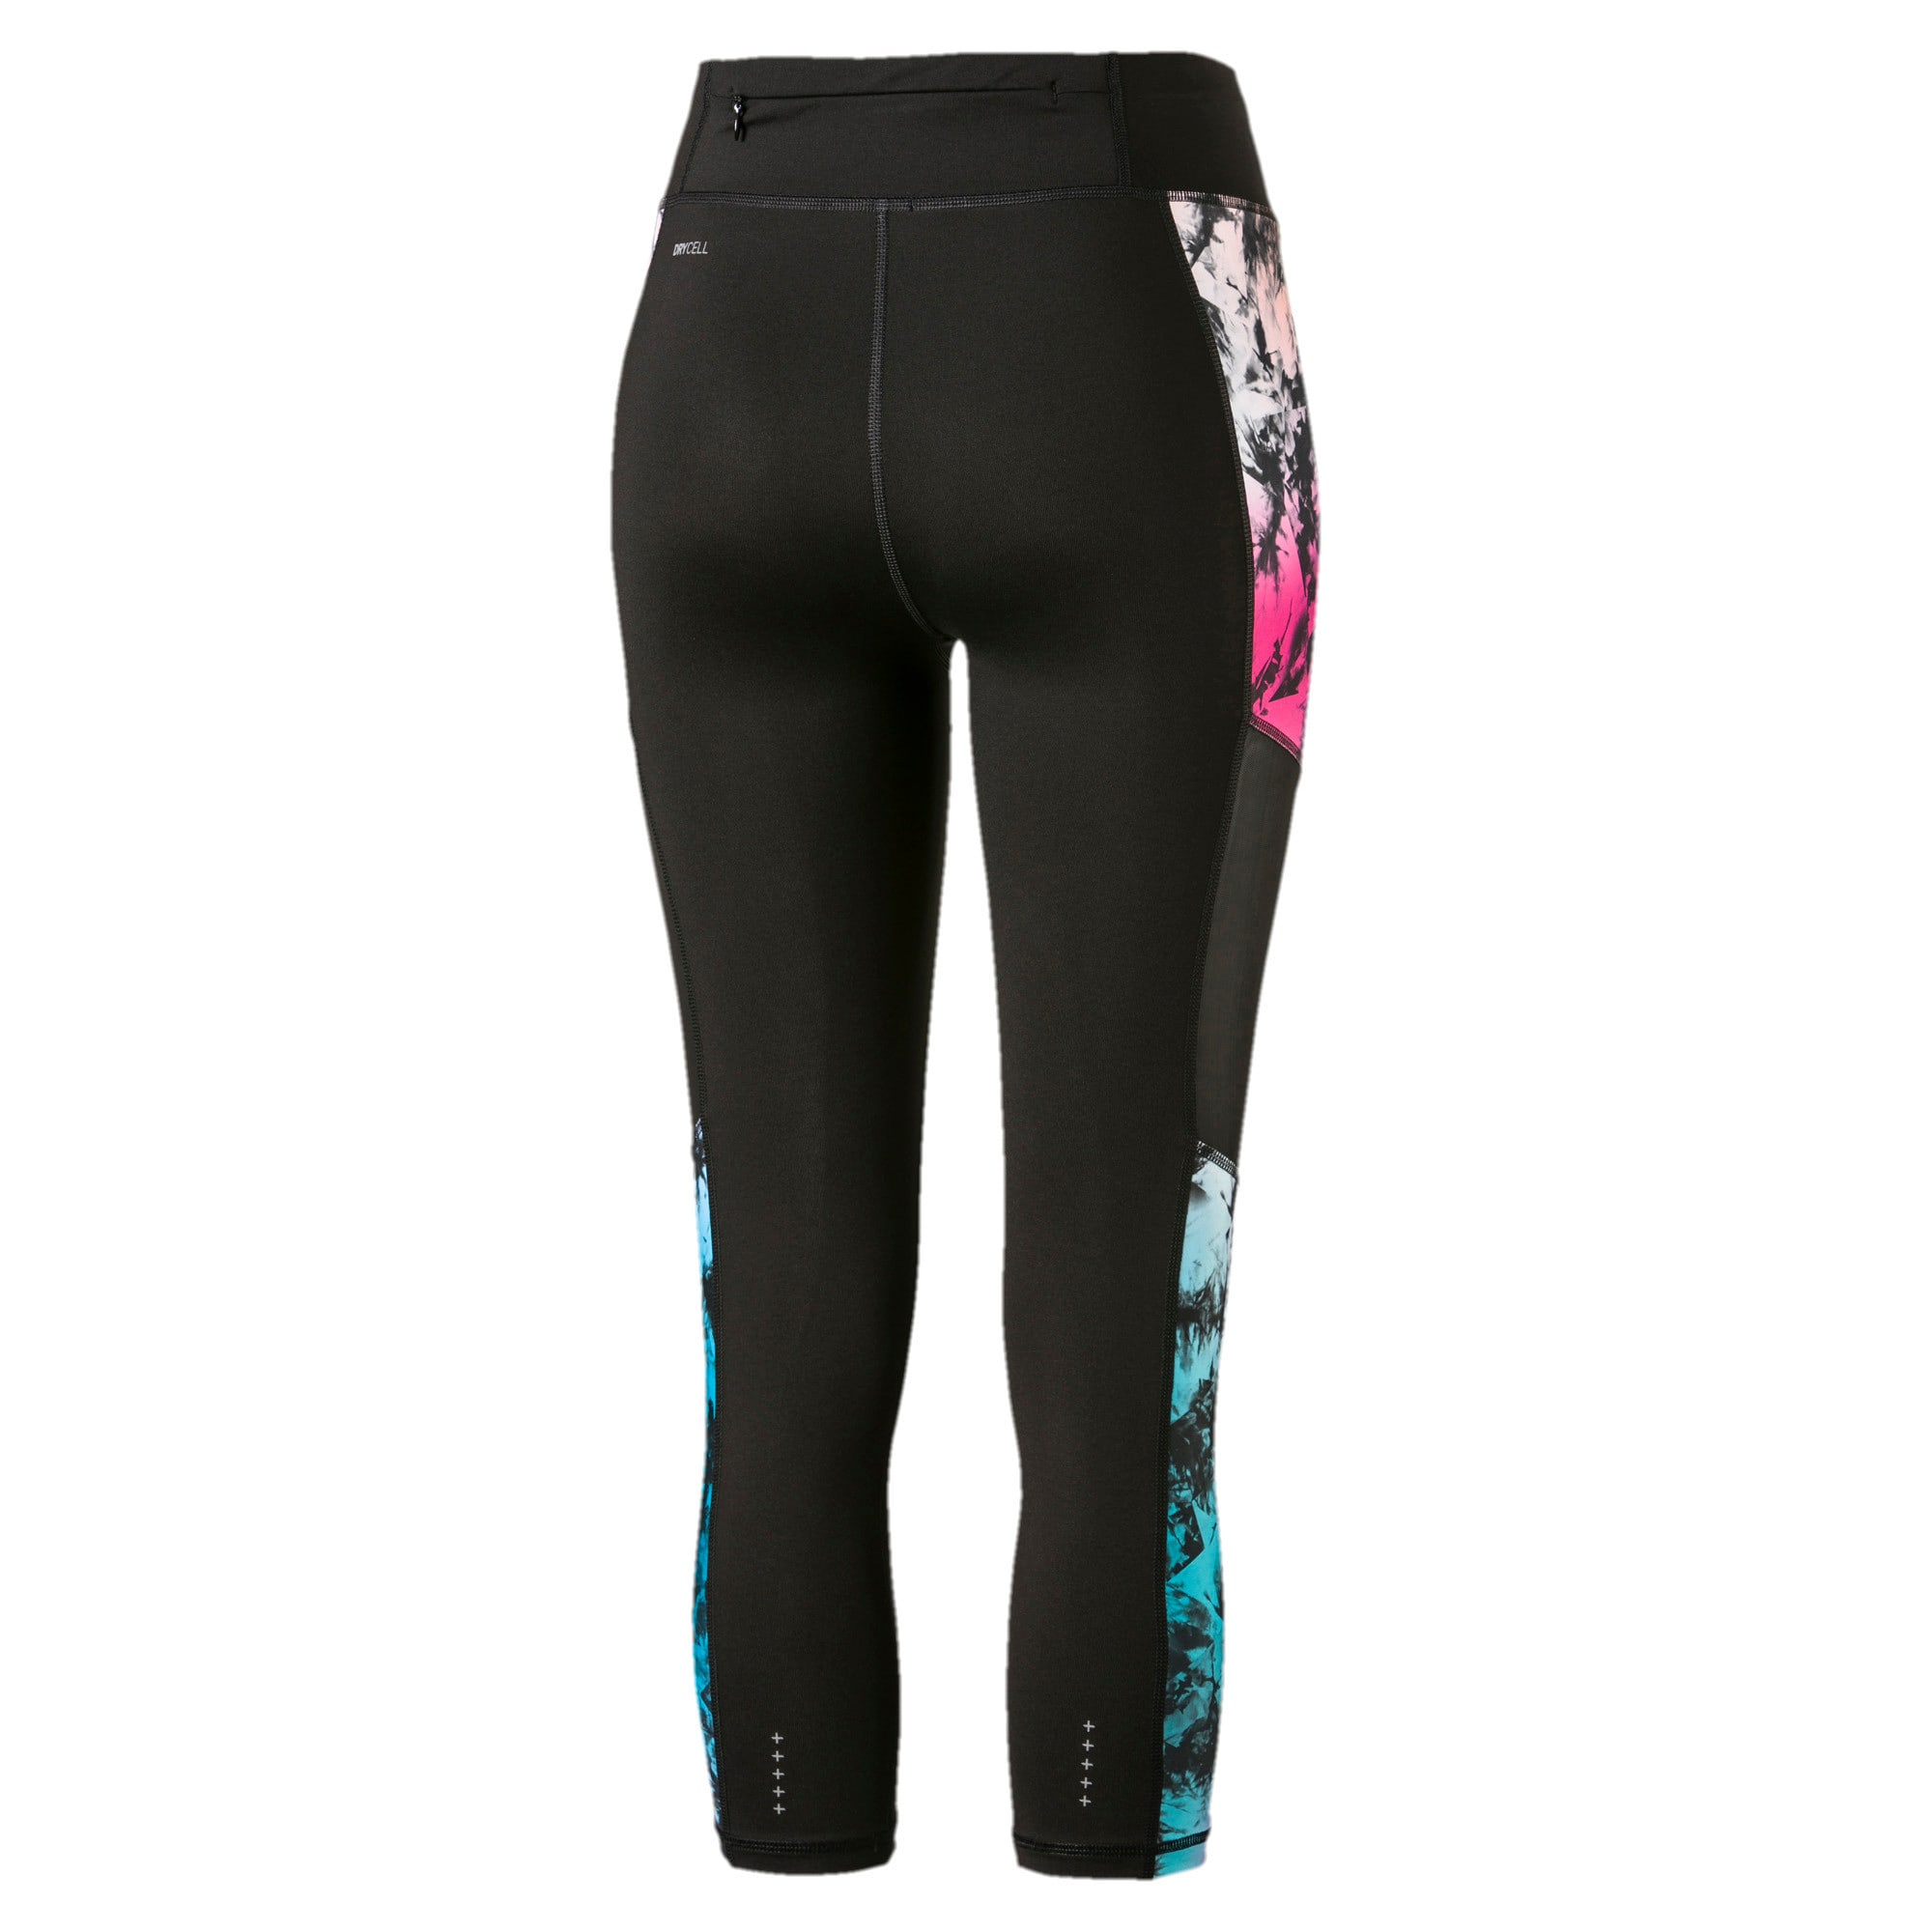 Thumbnail 5 of Ignite 3/4 Graphic Women's Tights, Puma Black-Multi-Q2 Print, medium